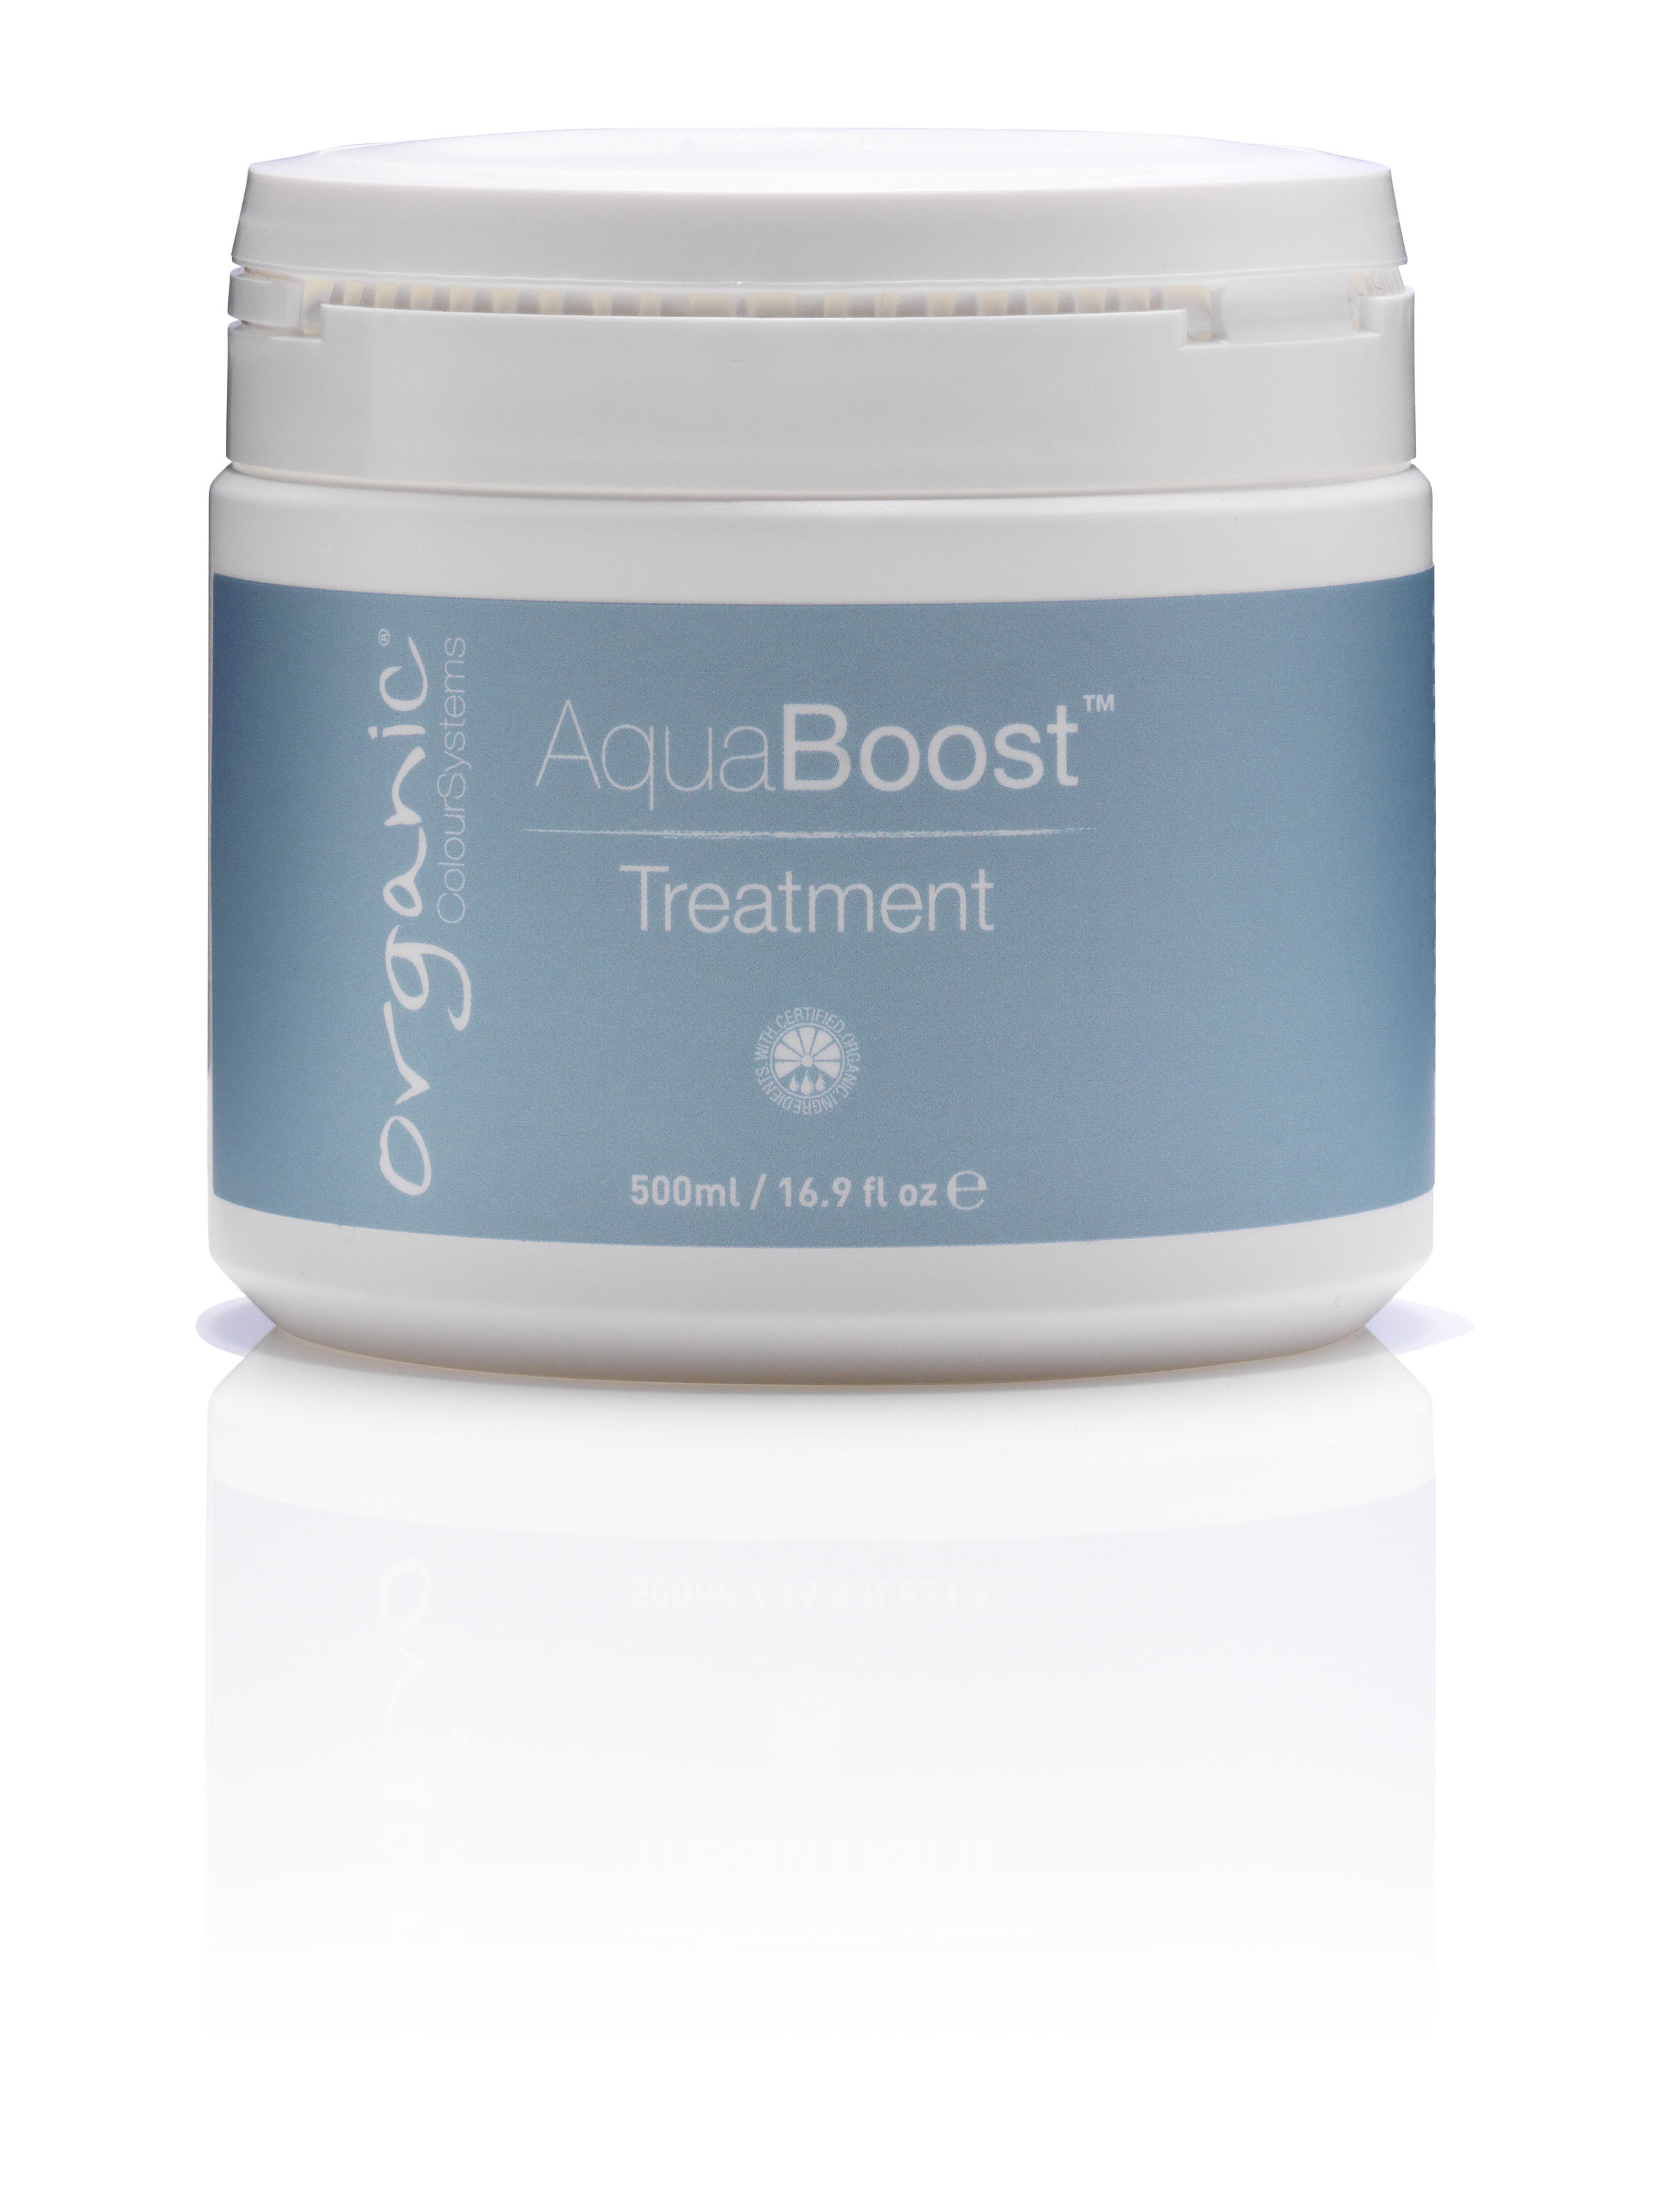 AquaBoost Treatment